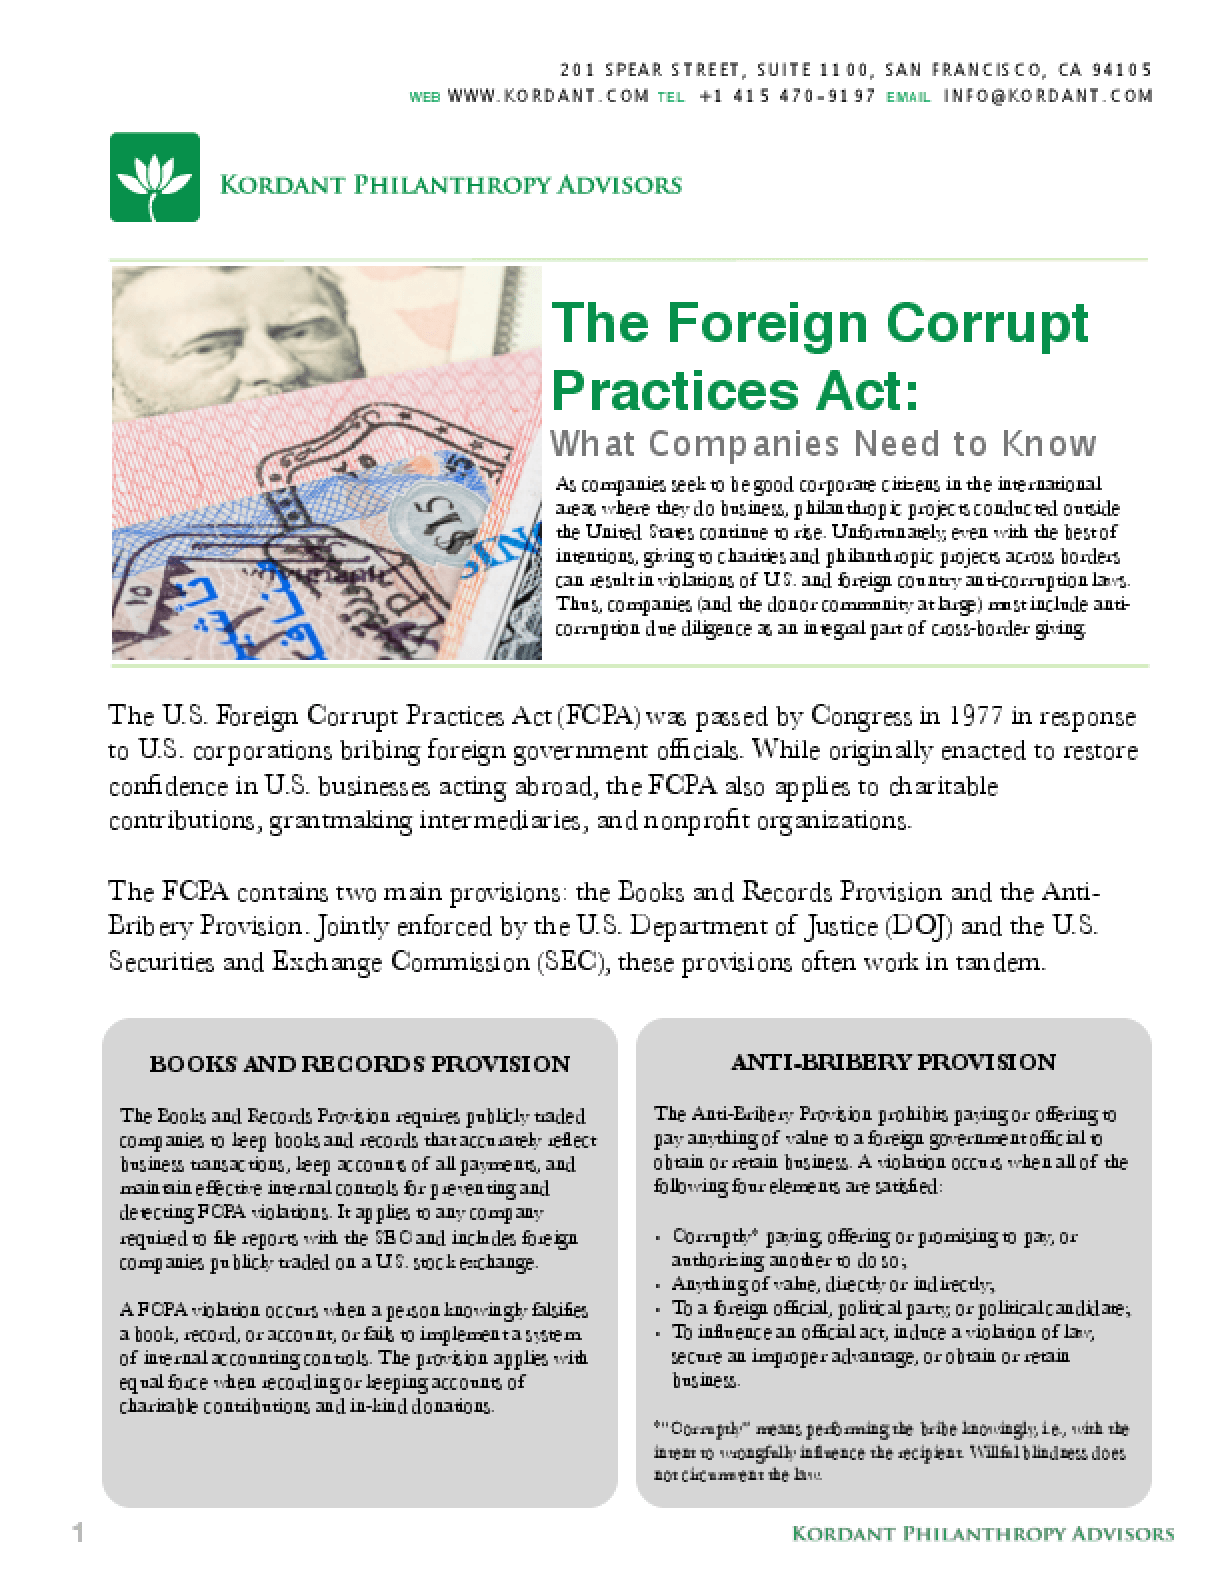 The Foreign Corrupt Practices Act What Companies Need To